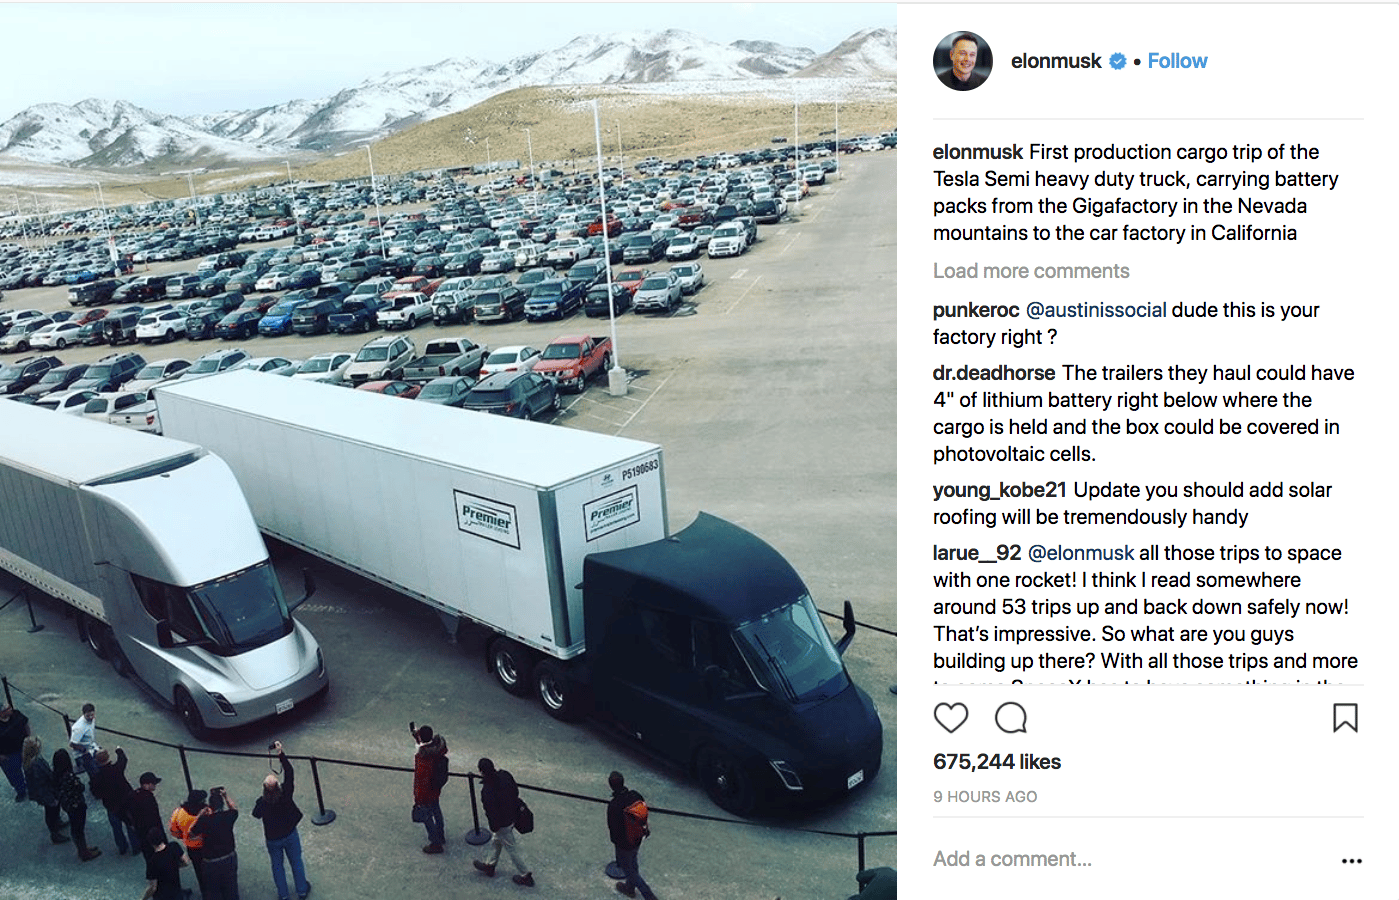 Elon Musk on Instagram